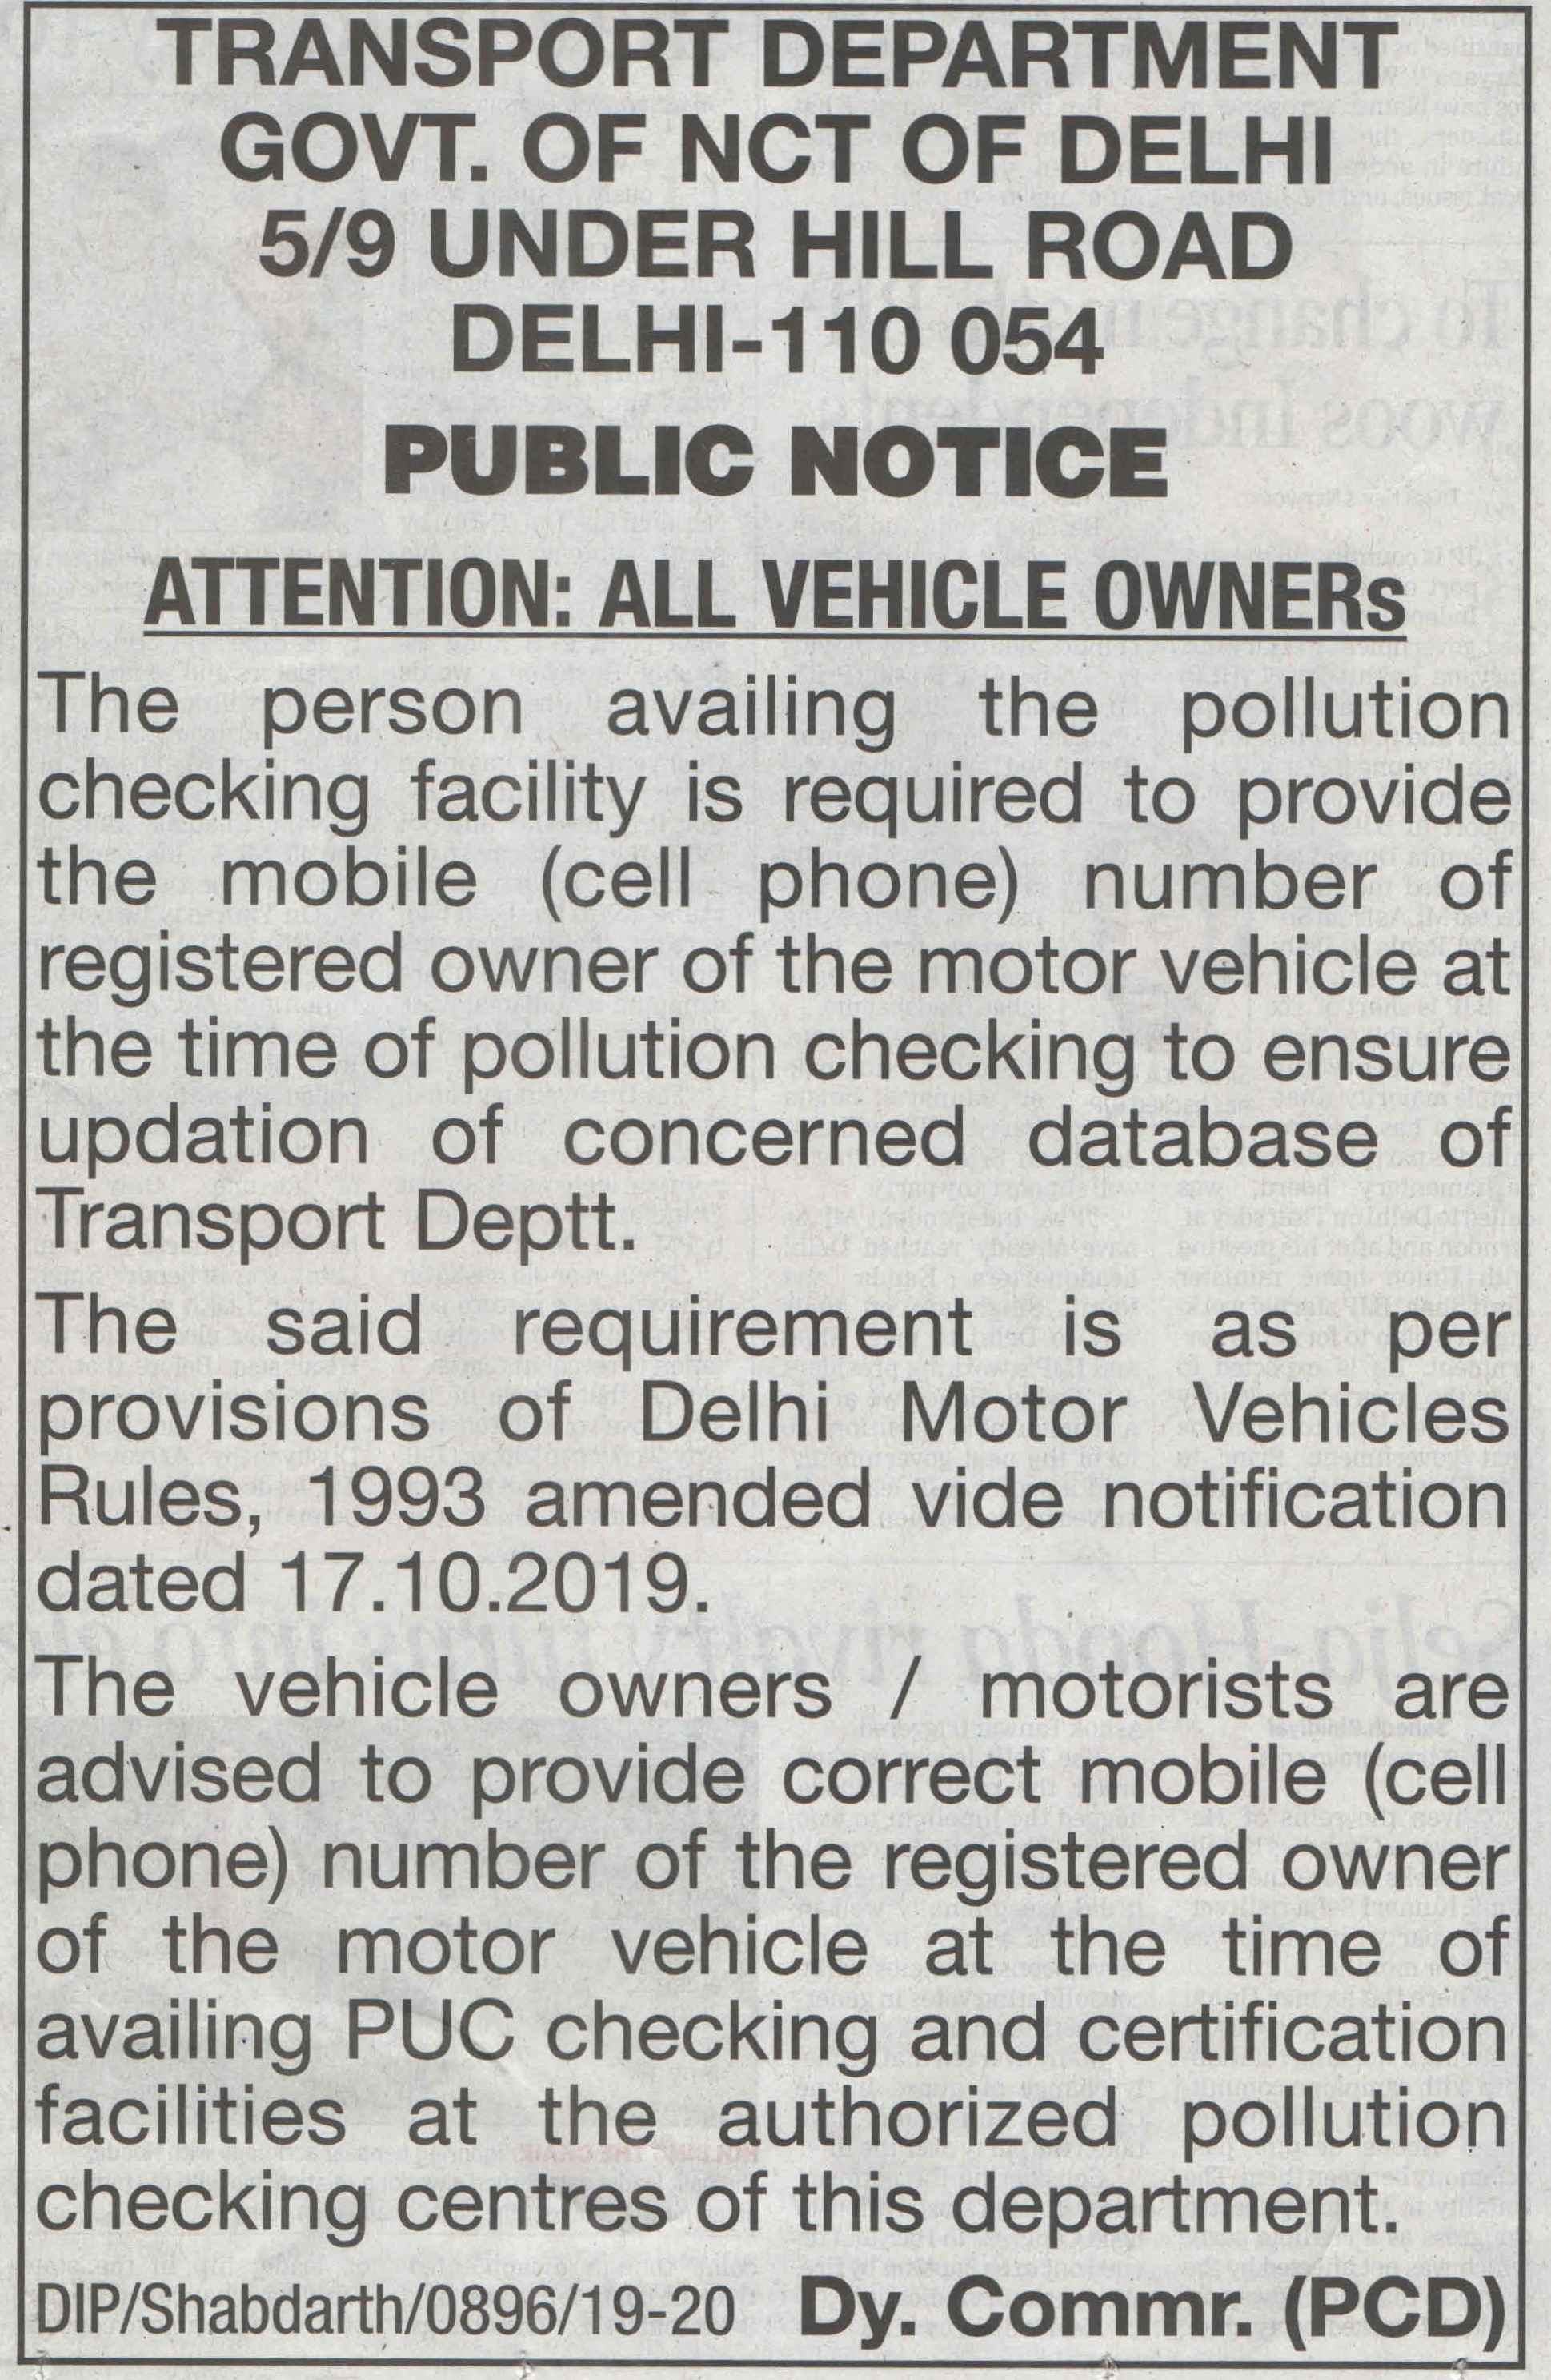 Advertisement by Transport Department, NCT OF dELHI